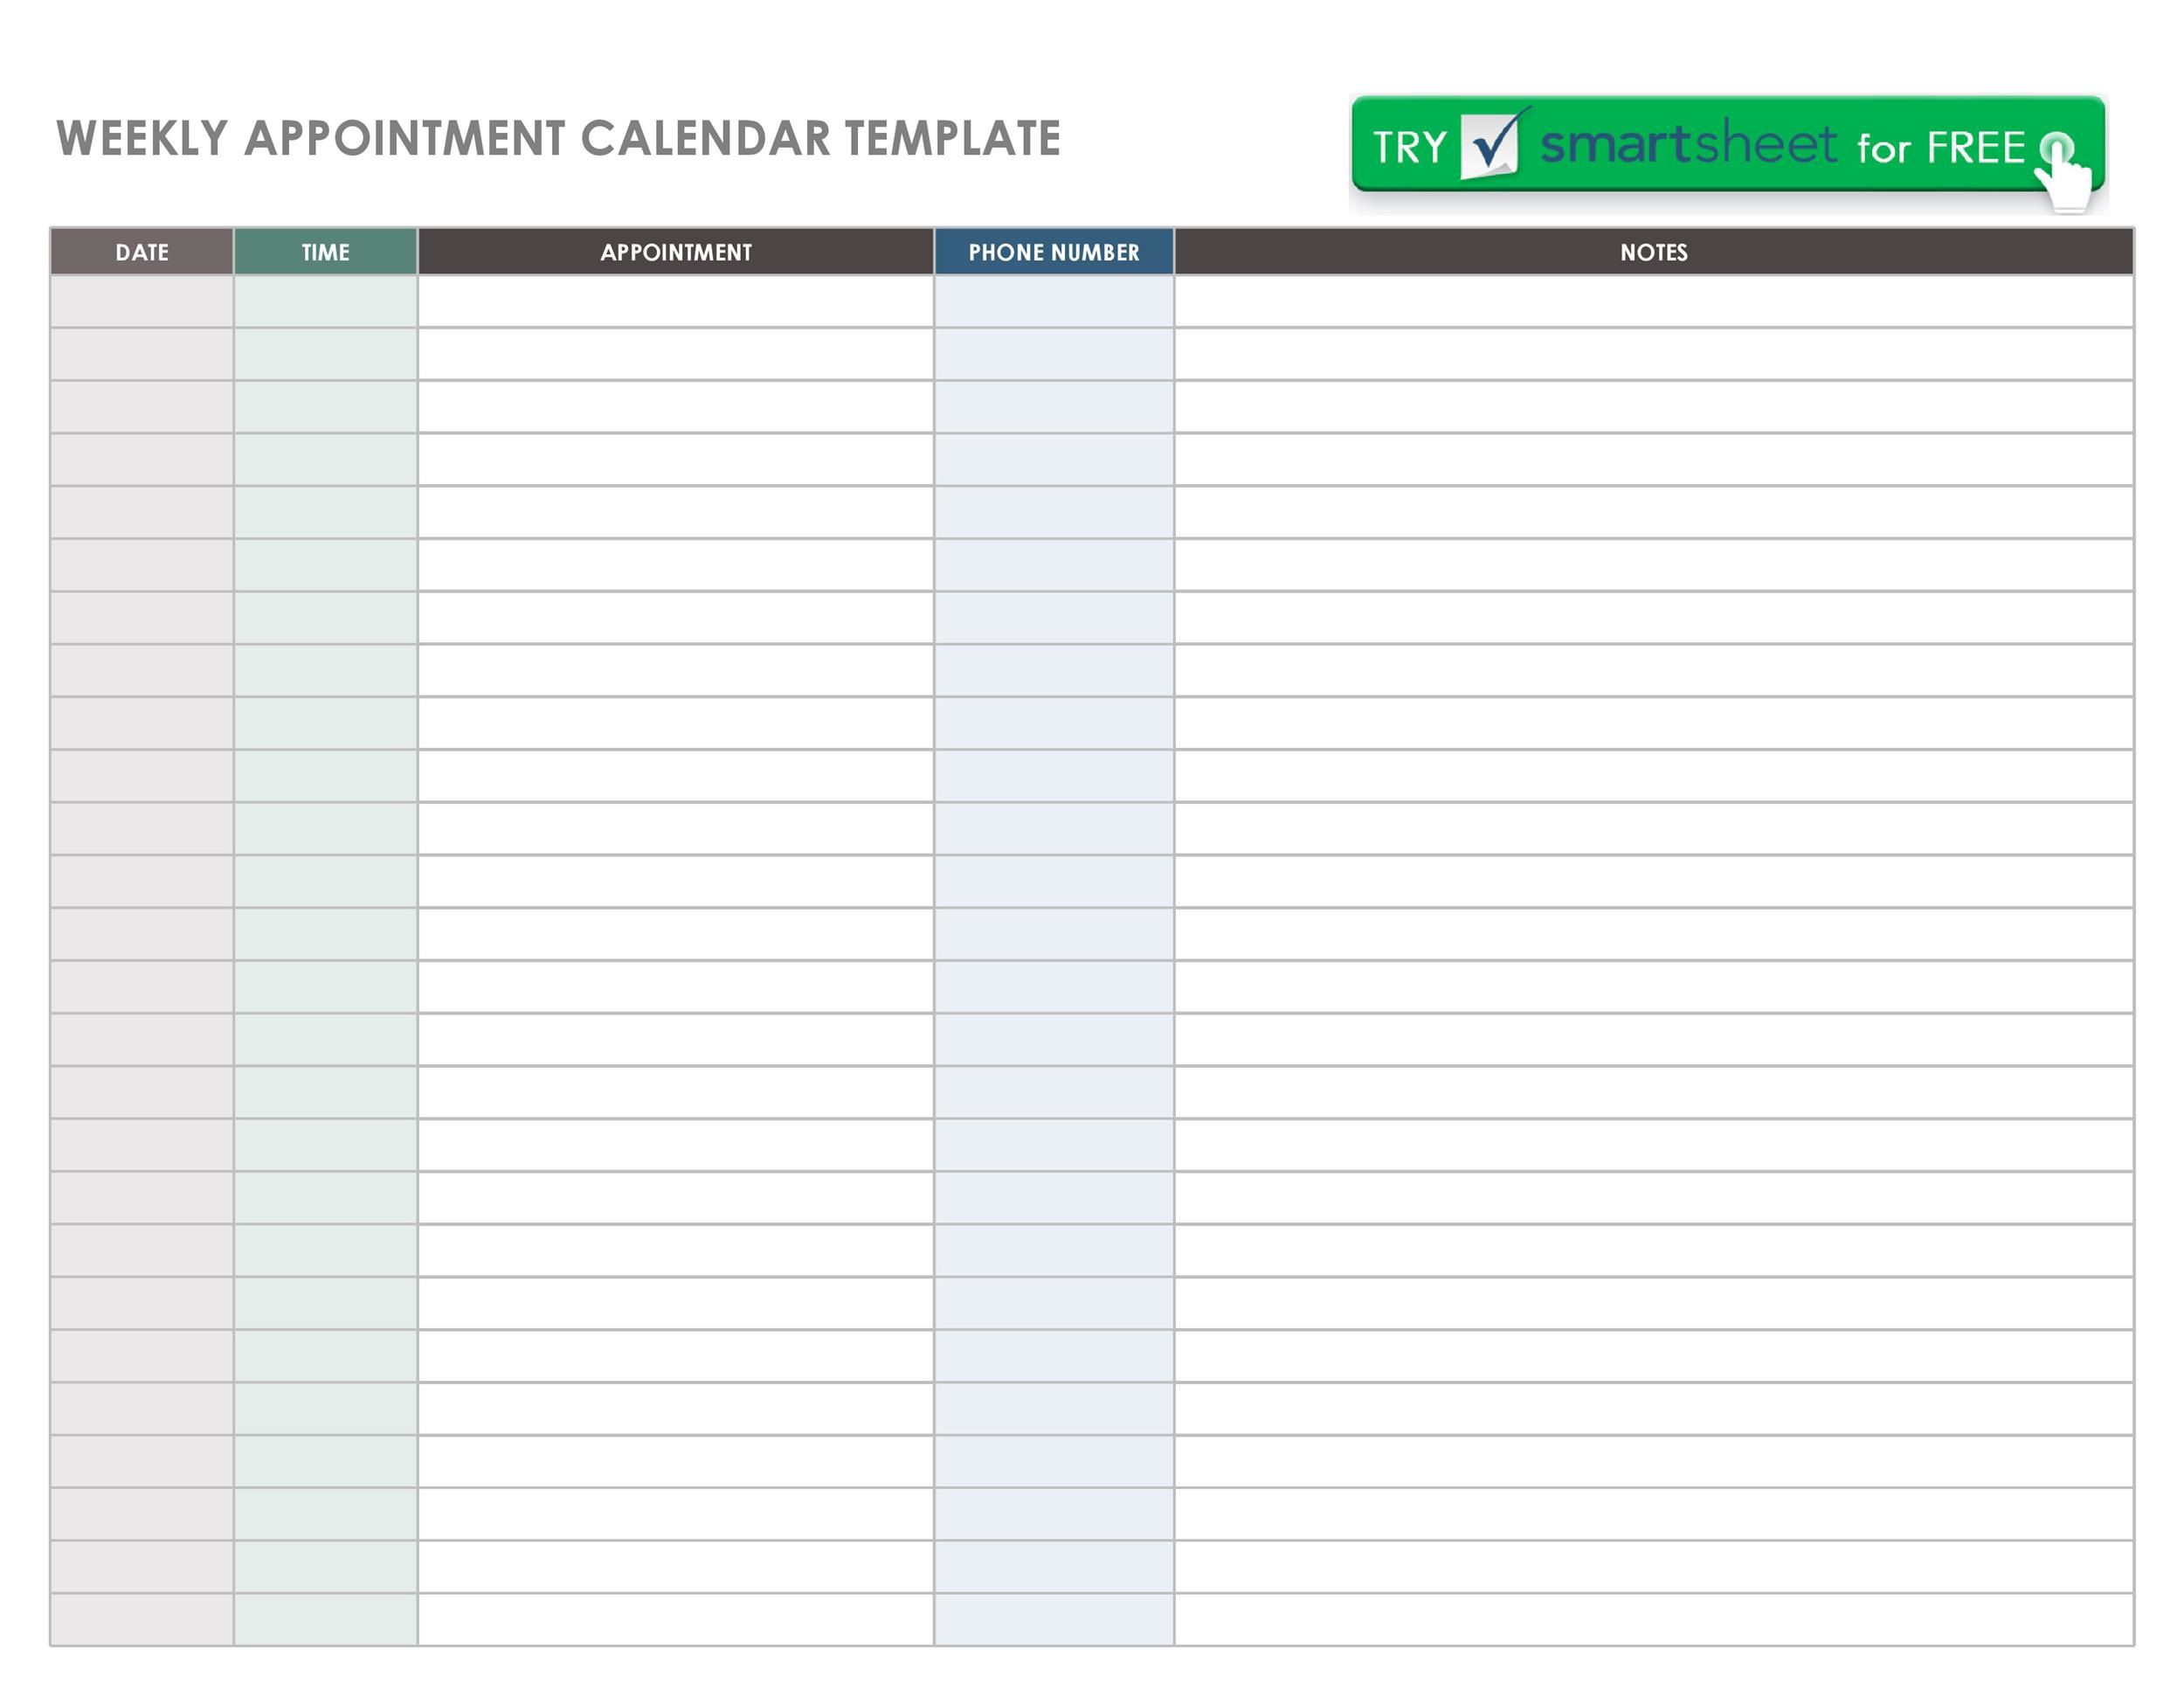 003 Fantastic Weekly Appointment Calendar Template Idea  Free WordFull